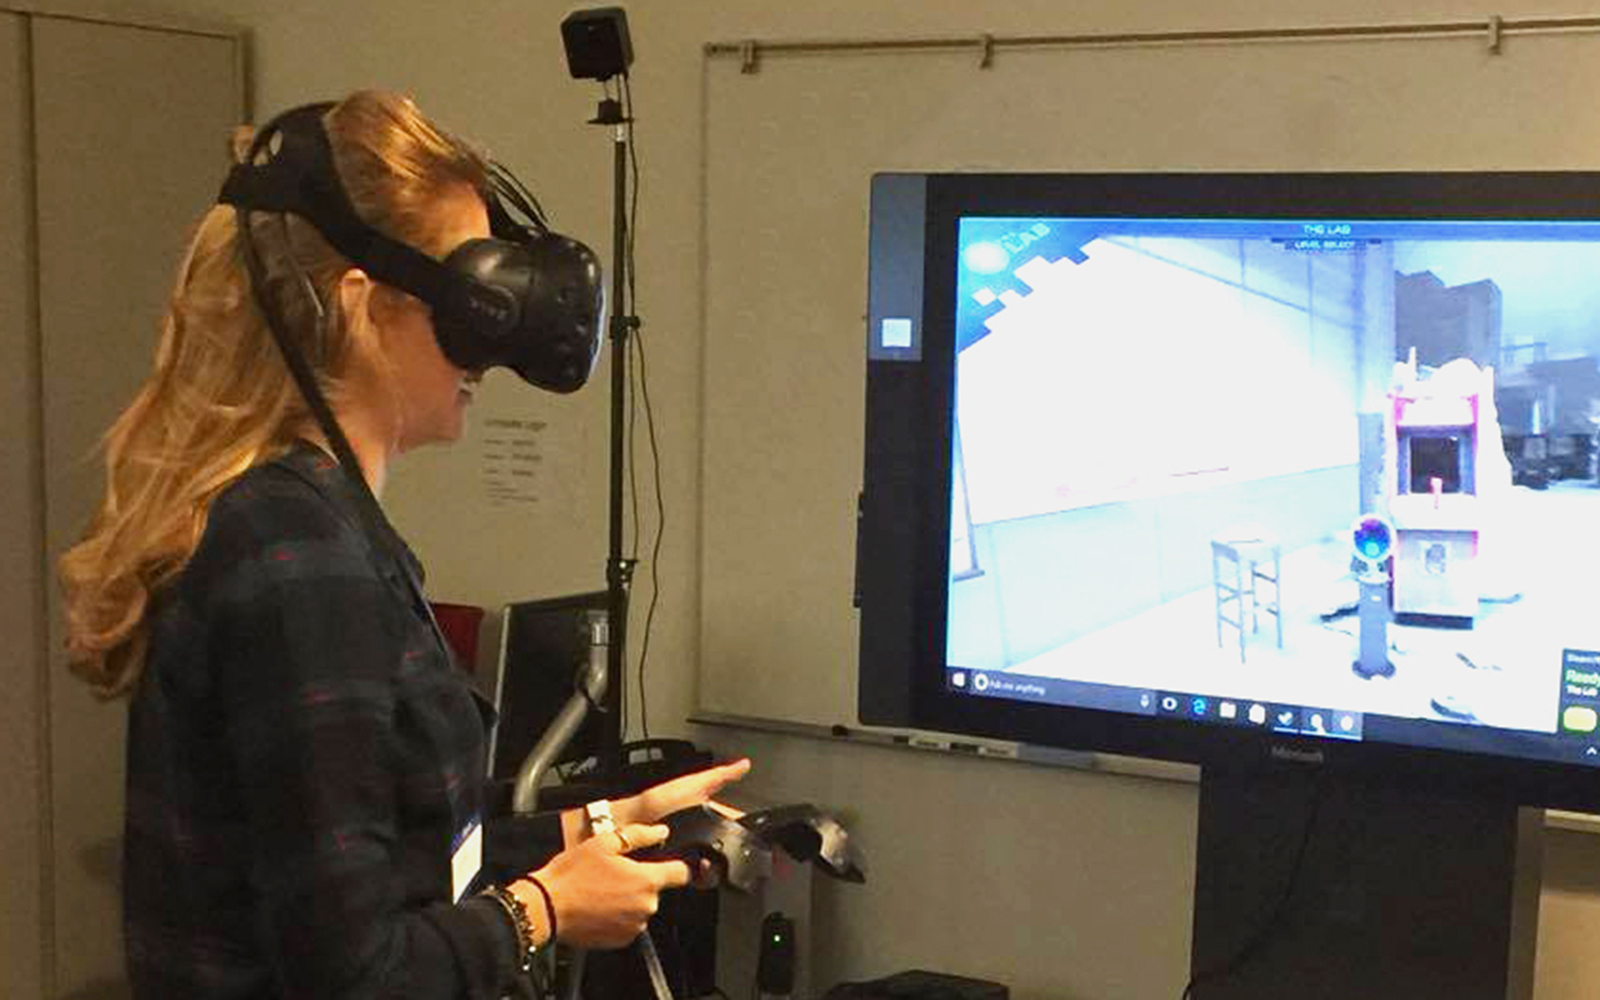 From Star Wars to Retail Merchandising: OPIM's New Virtual Reality Technology Entertains, Educates in Entirely New Way